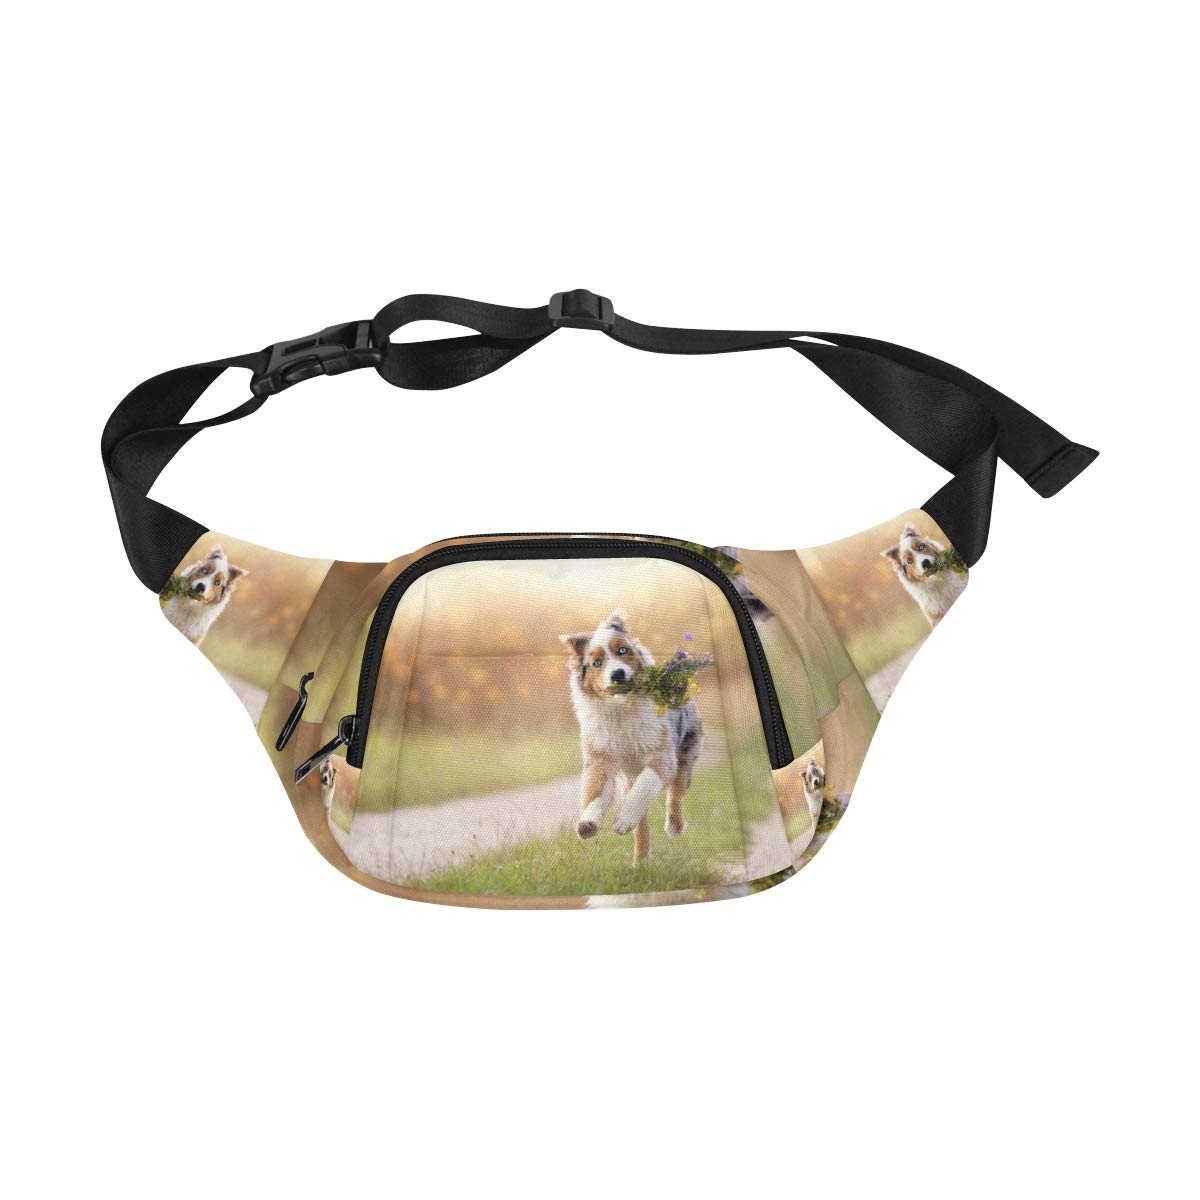 Valentine Dog With A Red Rose Fenny Packs Waist Bags Adjustable Belt Waterproof Nylon Travel Running Sport Vacation Party For Men Women Boys Girls Kids